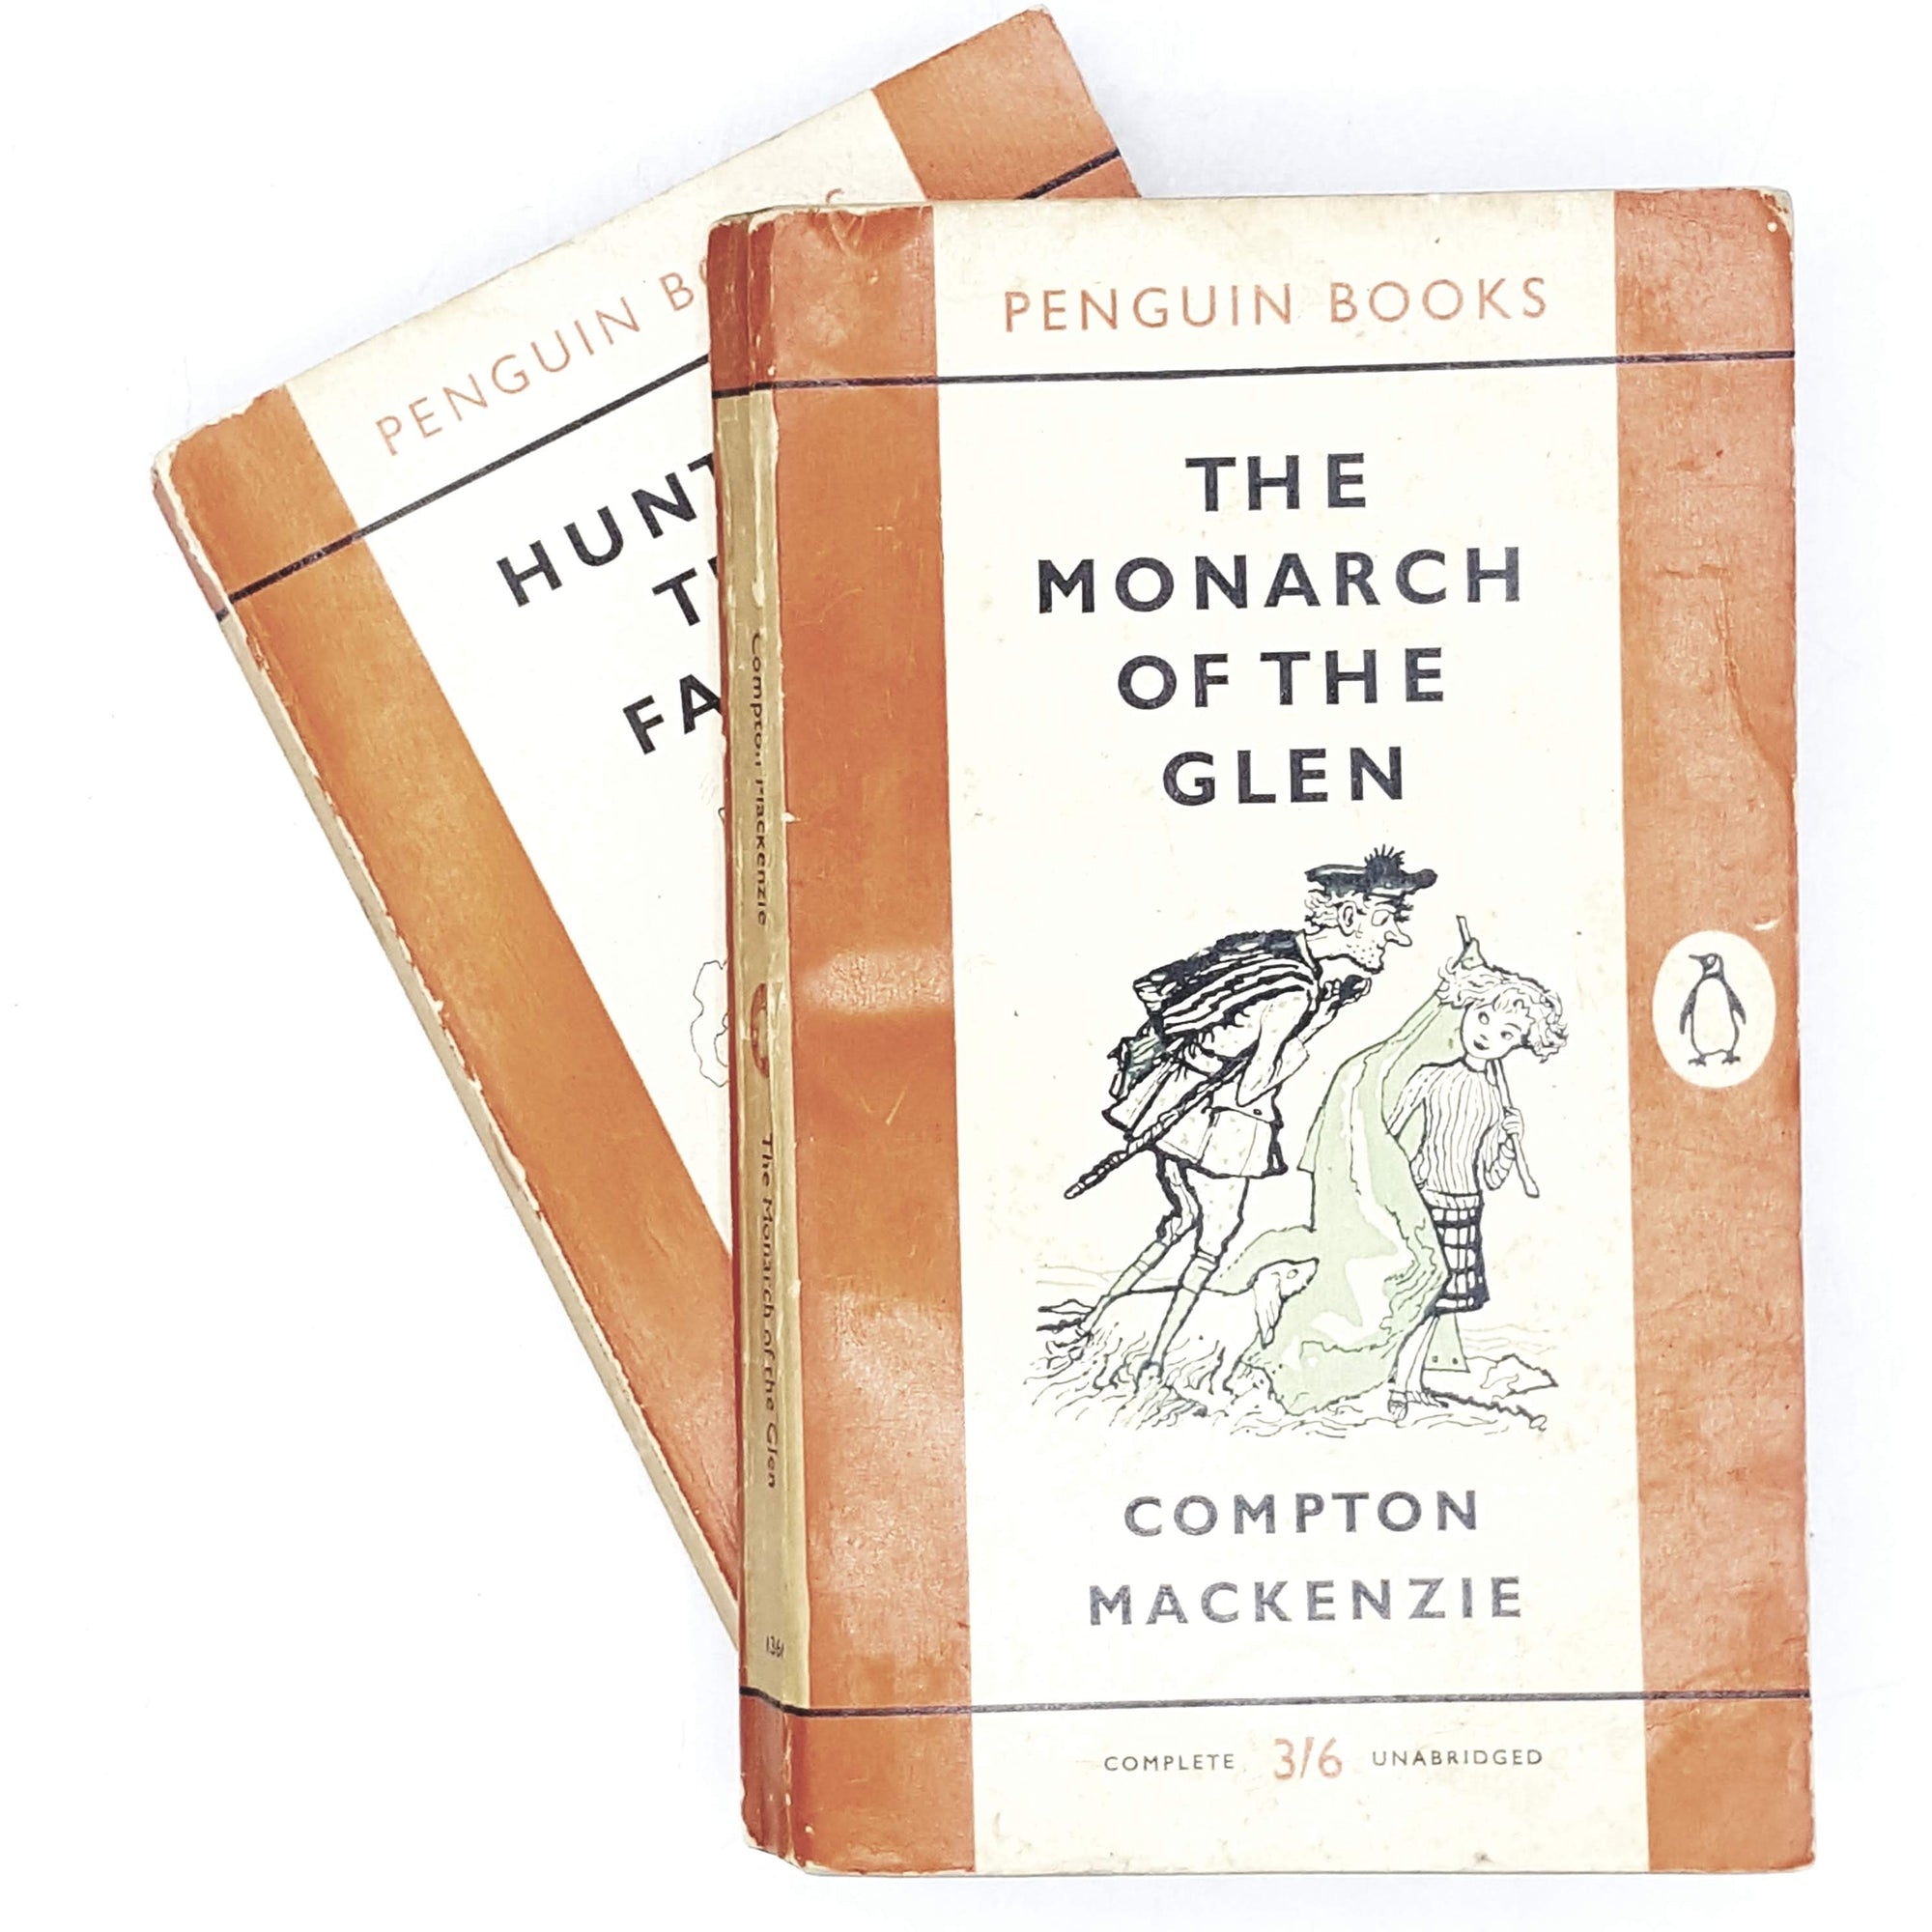 vintage-penguin-collection-works-of-compton-mackenzie-1959-orange-classic-literature-country-house-library